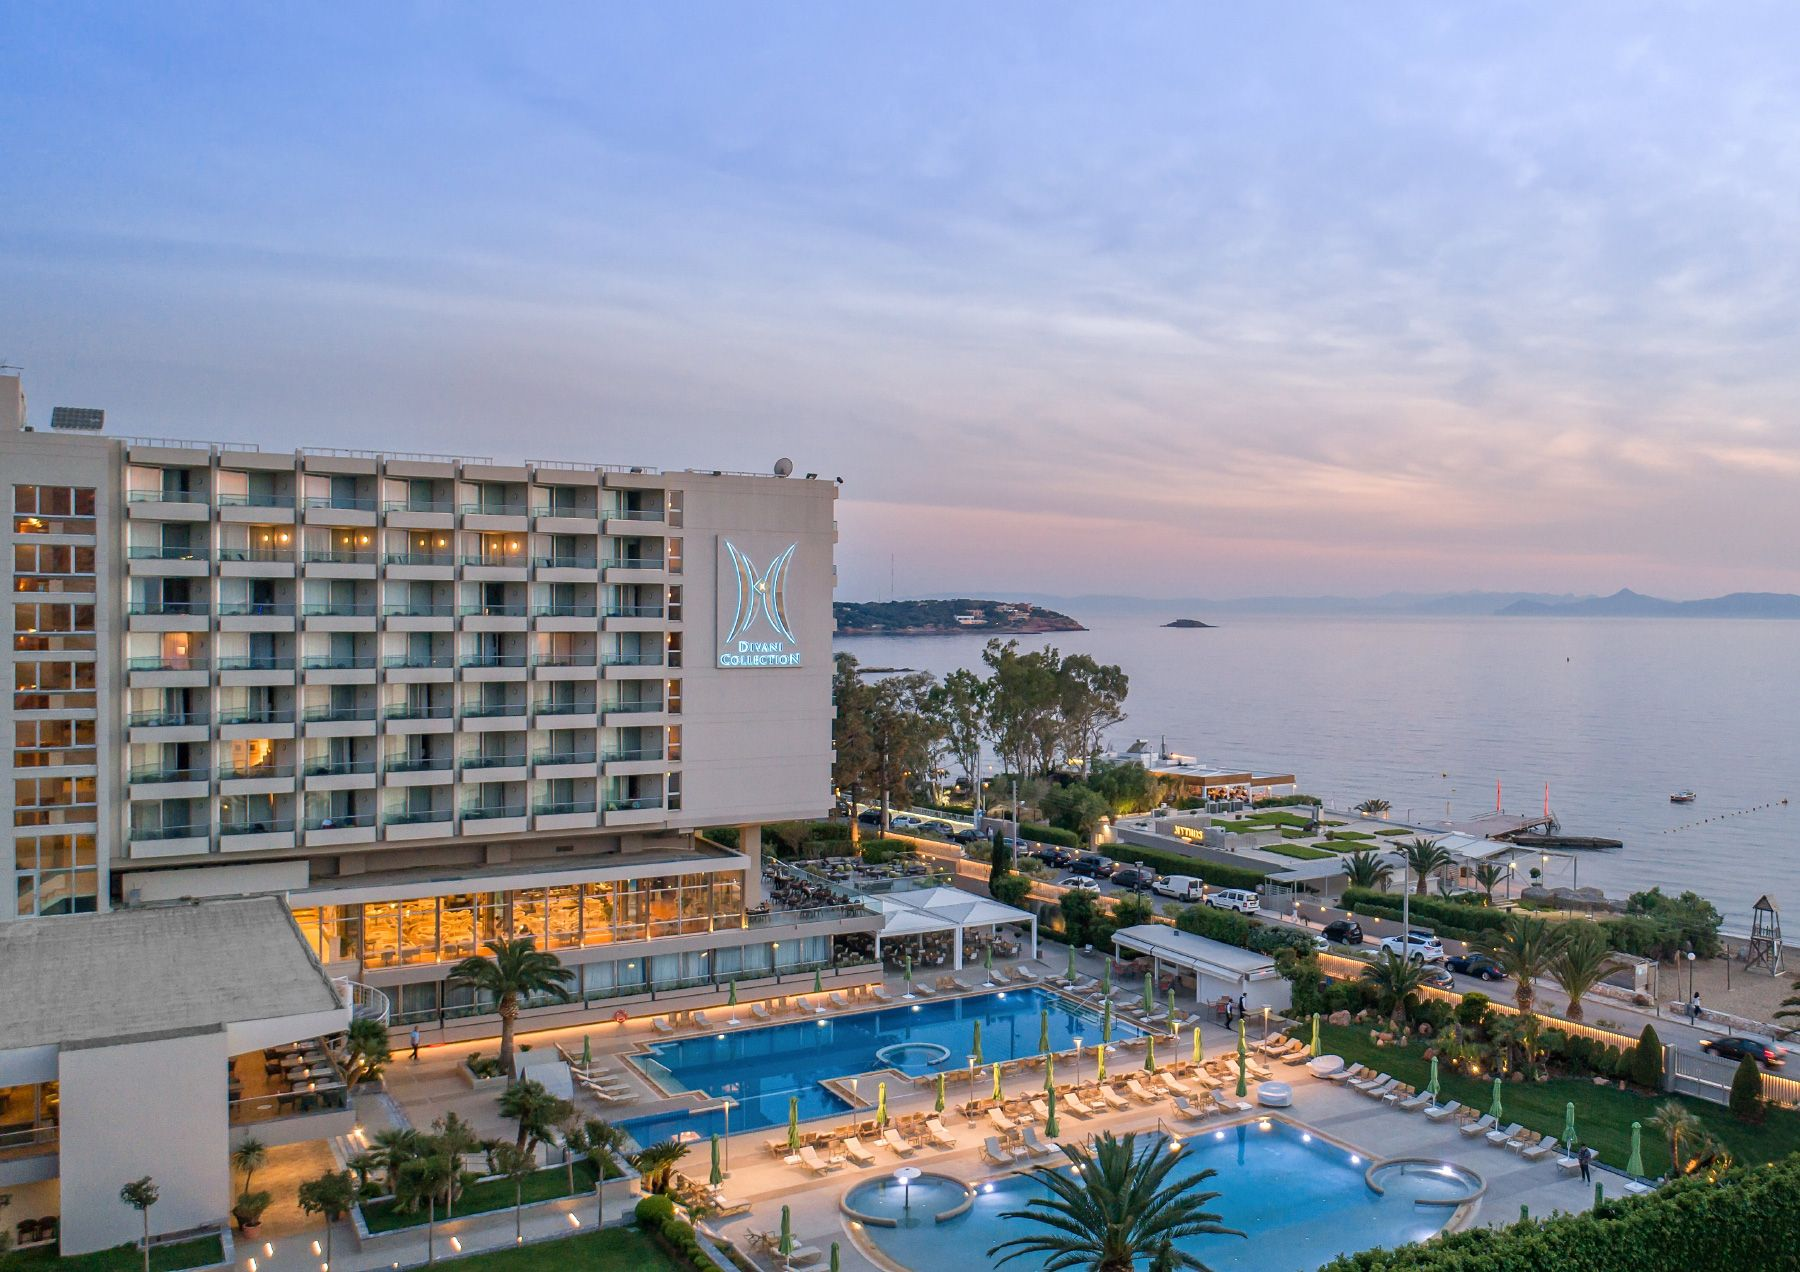 Divani Apollon Palace & Thalasso | Athens Riviera - Offers - Catholic Easter offer